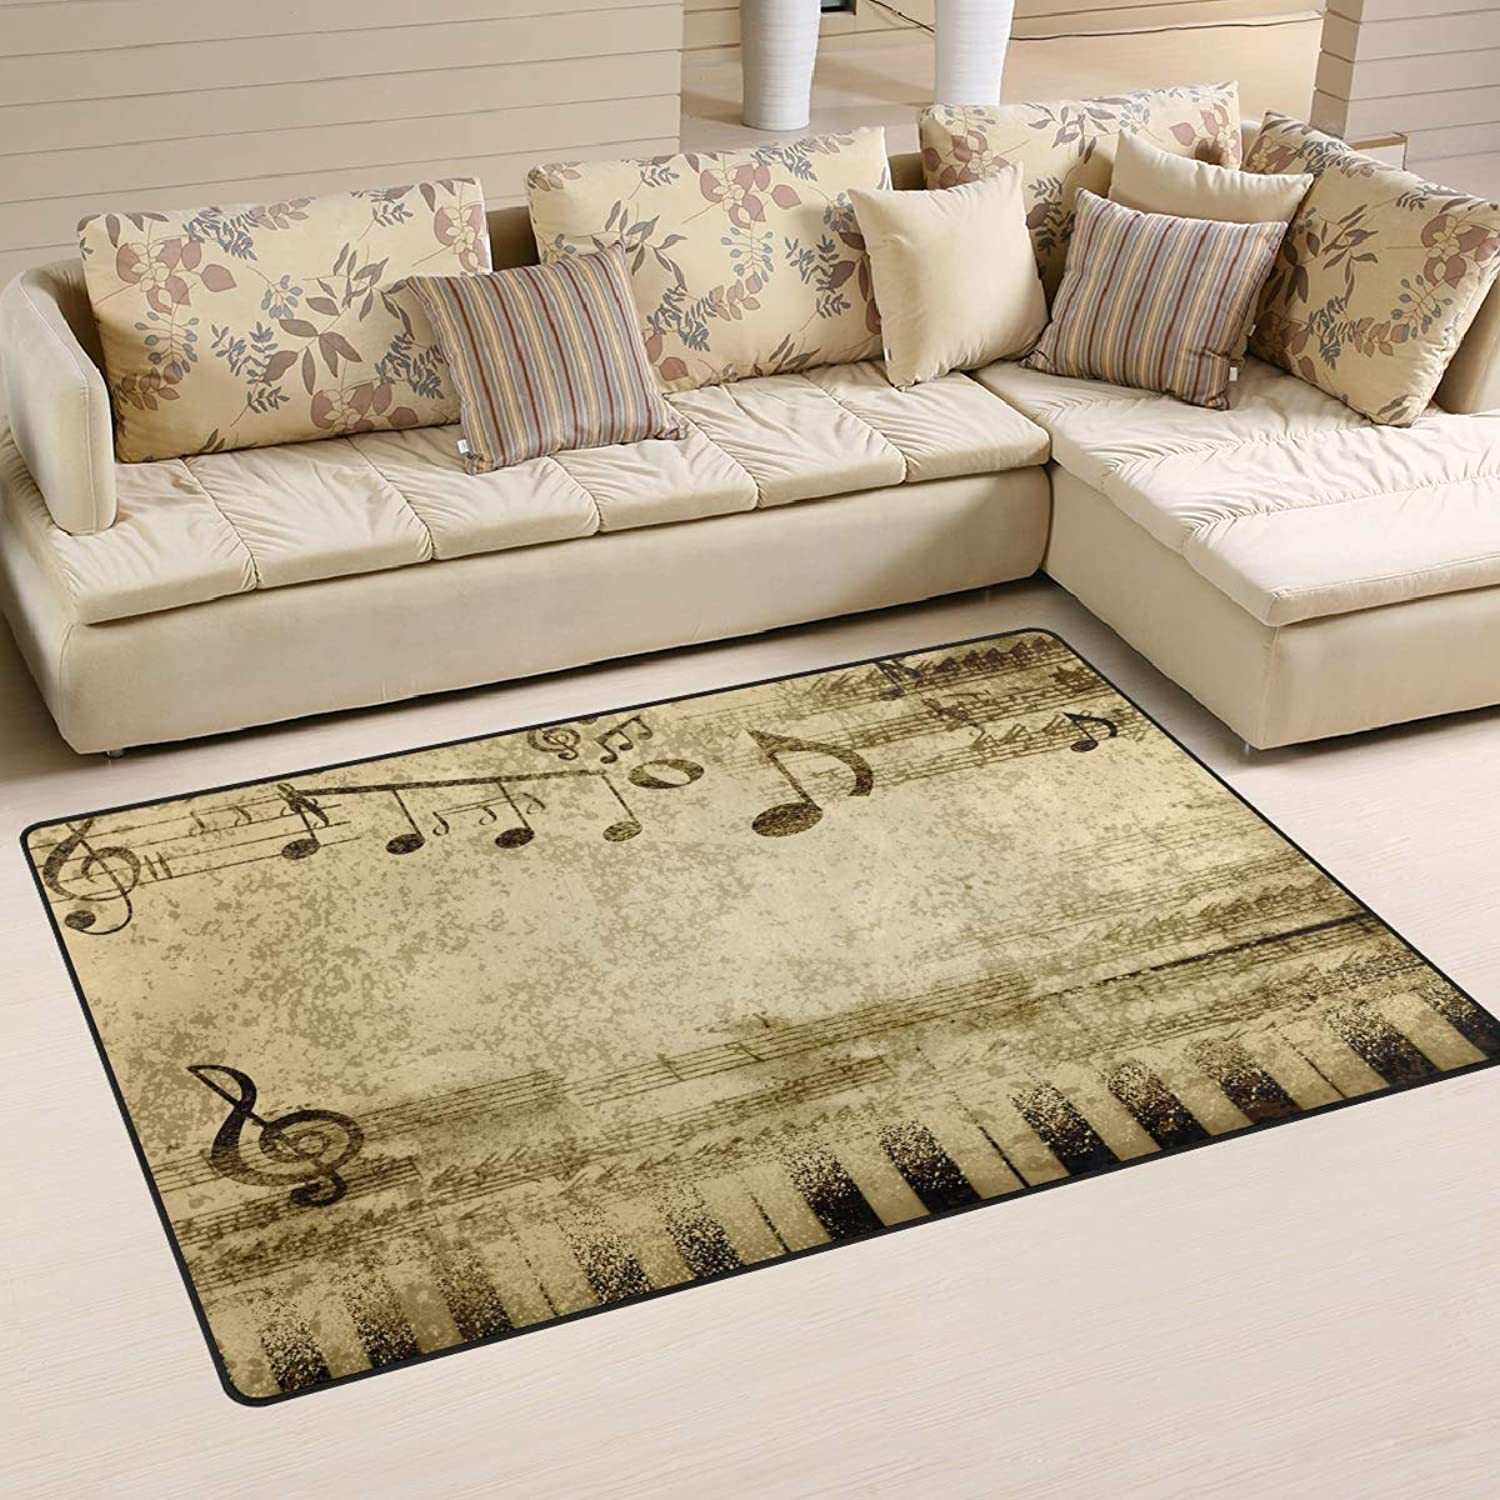 Area Rugs Doormats Music Notes On Old Paper 5'x3'3 (60x39 Inches) Non-Slip Floor Mat Soft Carpet for Living Dining Bedroom Home